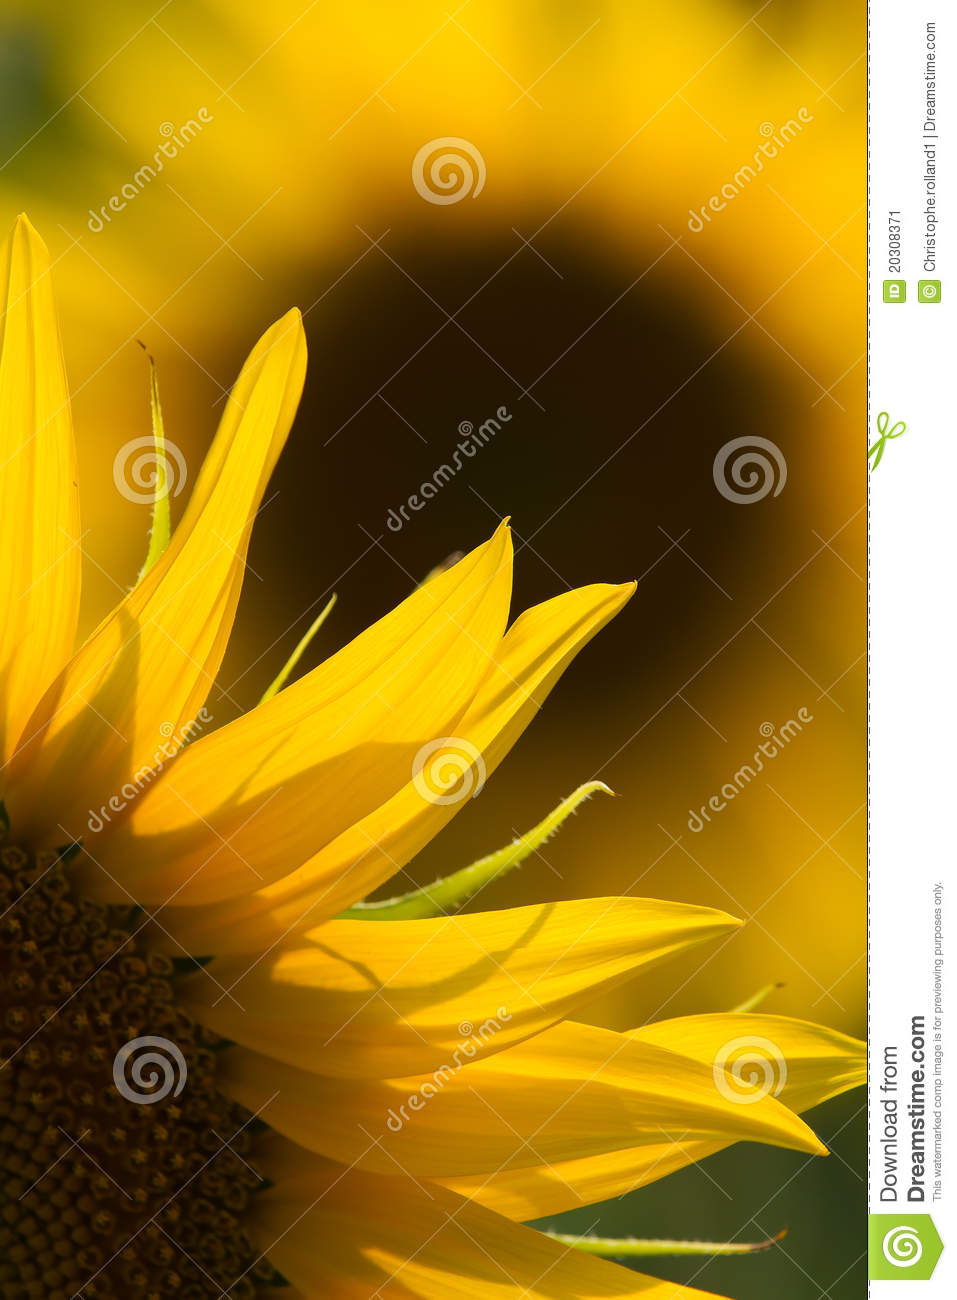 Download Sunflower close up stock image. Image of green, leaf - 20308371